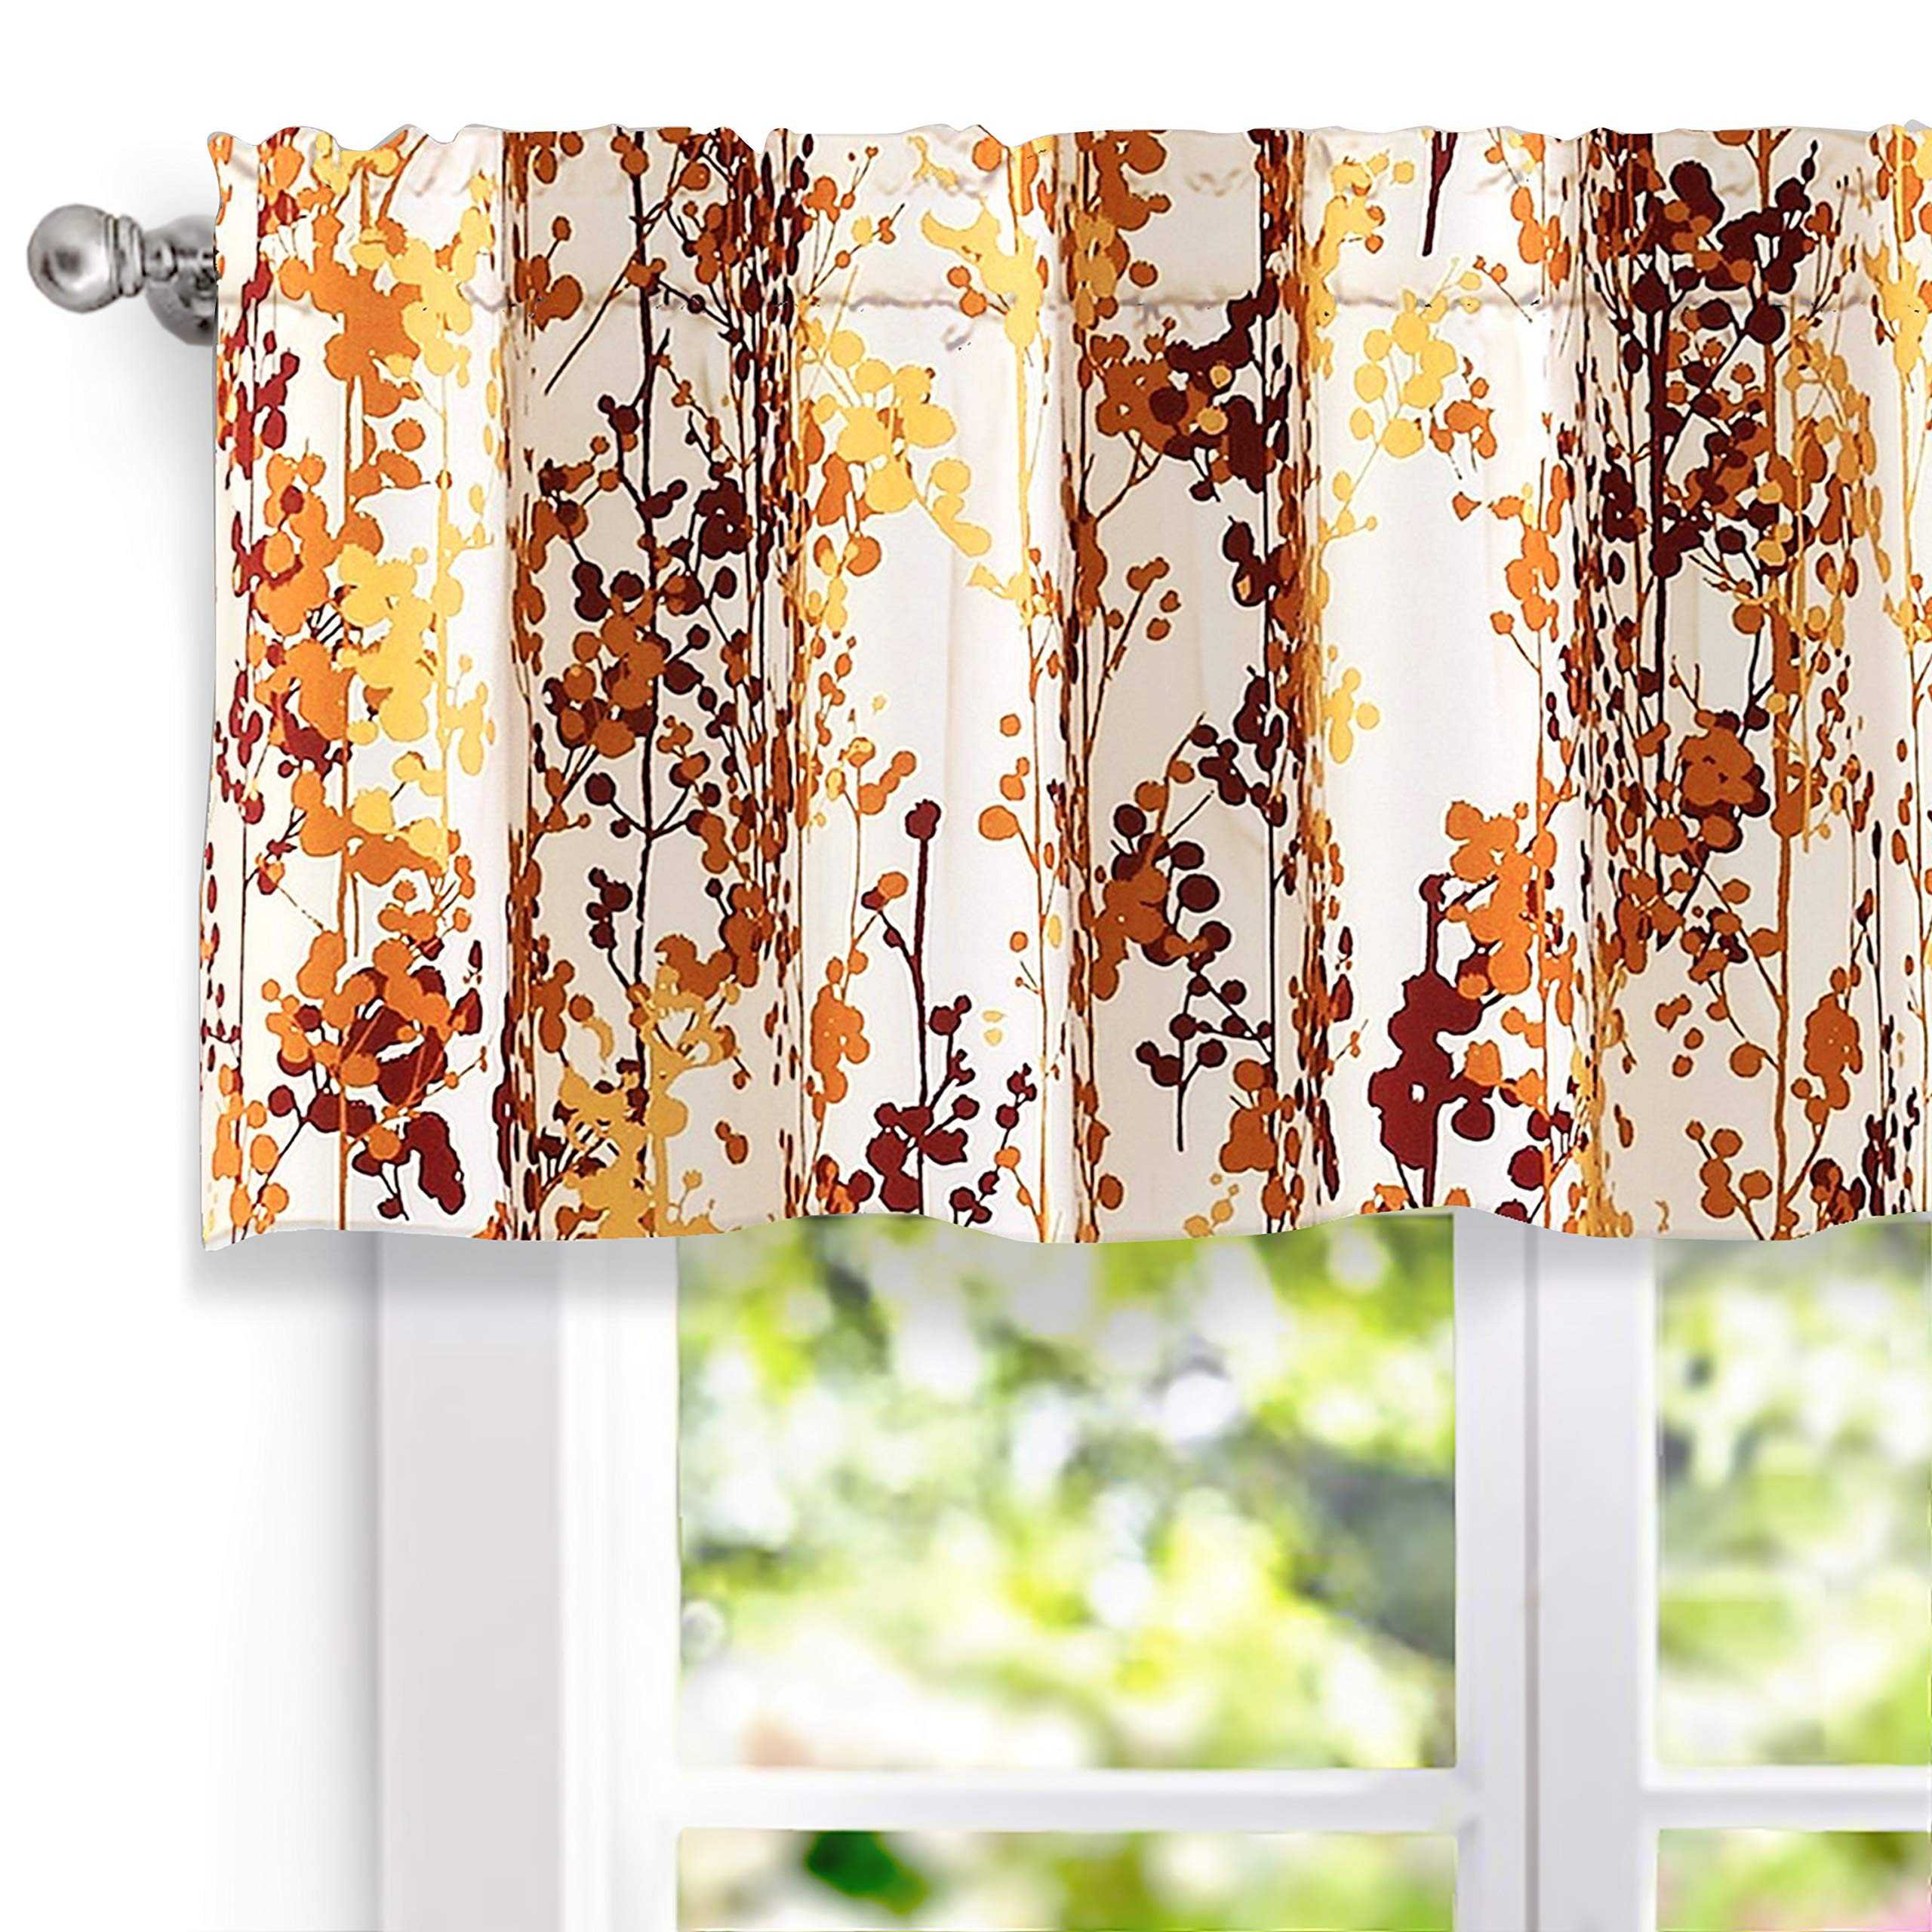 DriftAway Leah Abstract Floral Blossom Ink Painting Window Curtain Valance, Rod Pocket (Red/Rust/Orange/Gold/Yellow, 52''x18''+2'' Header)